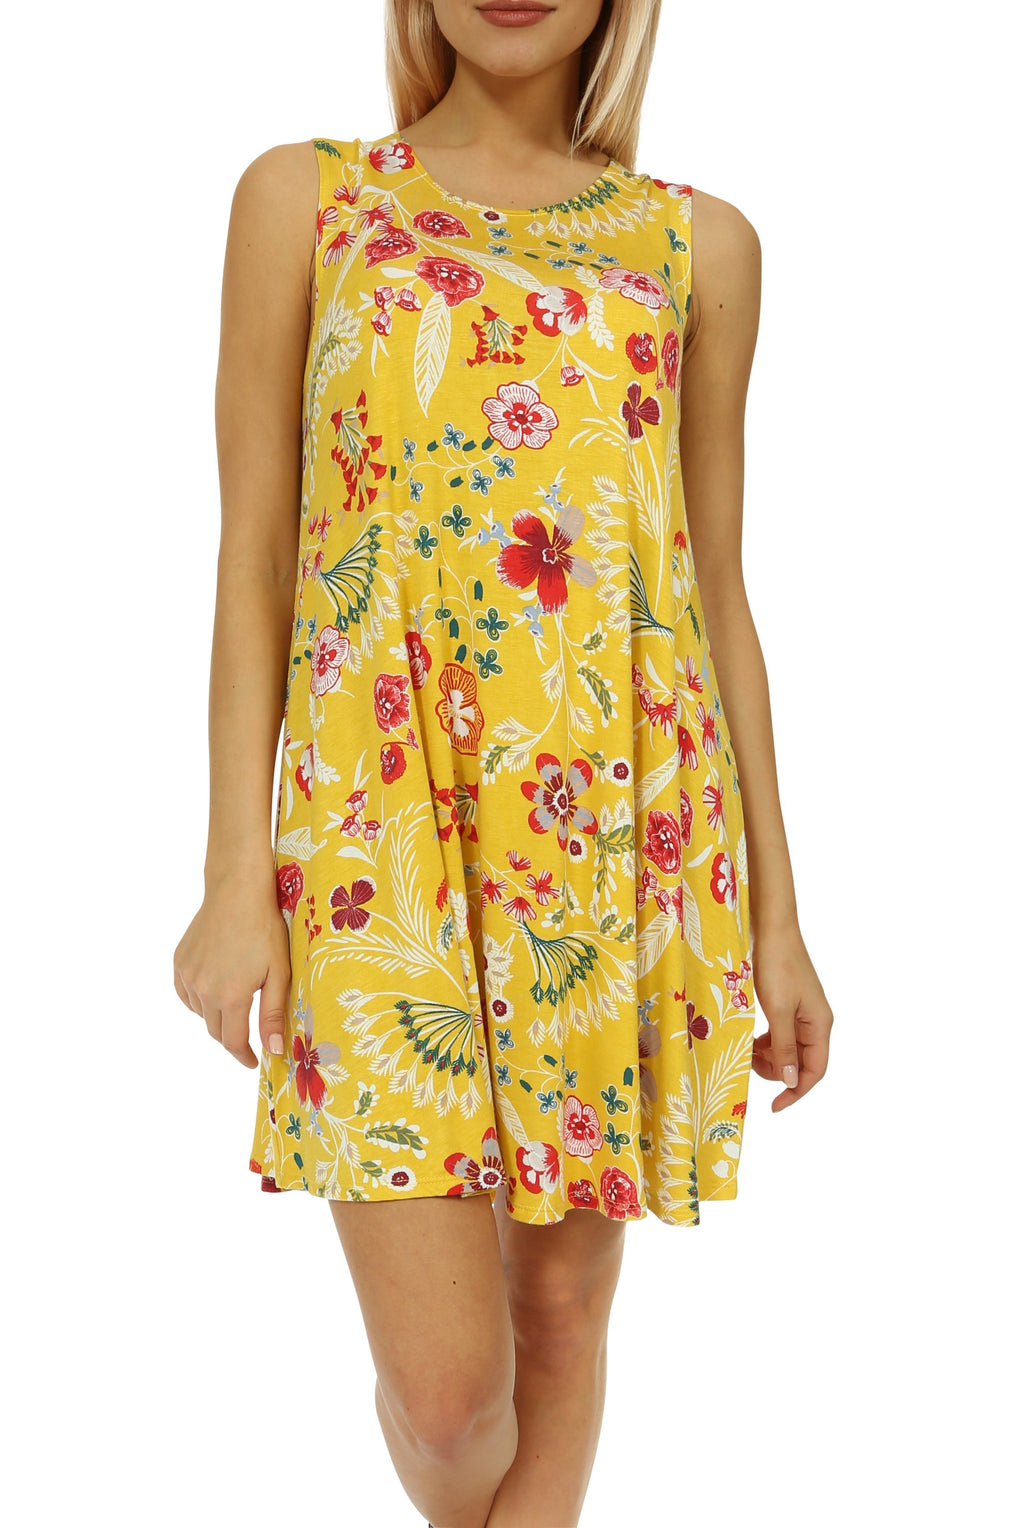 Teeze Me | Sleeveless Scoop Neck Floral Print Swing Dress | Yellow